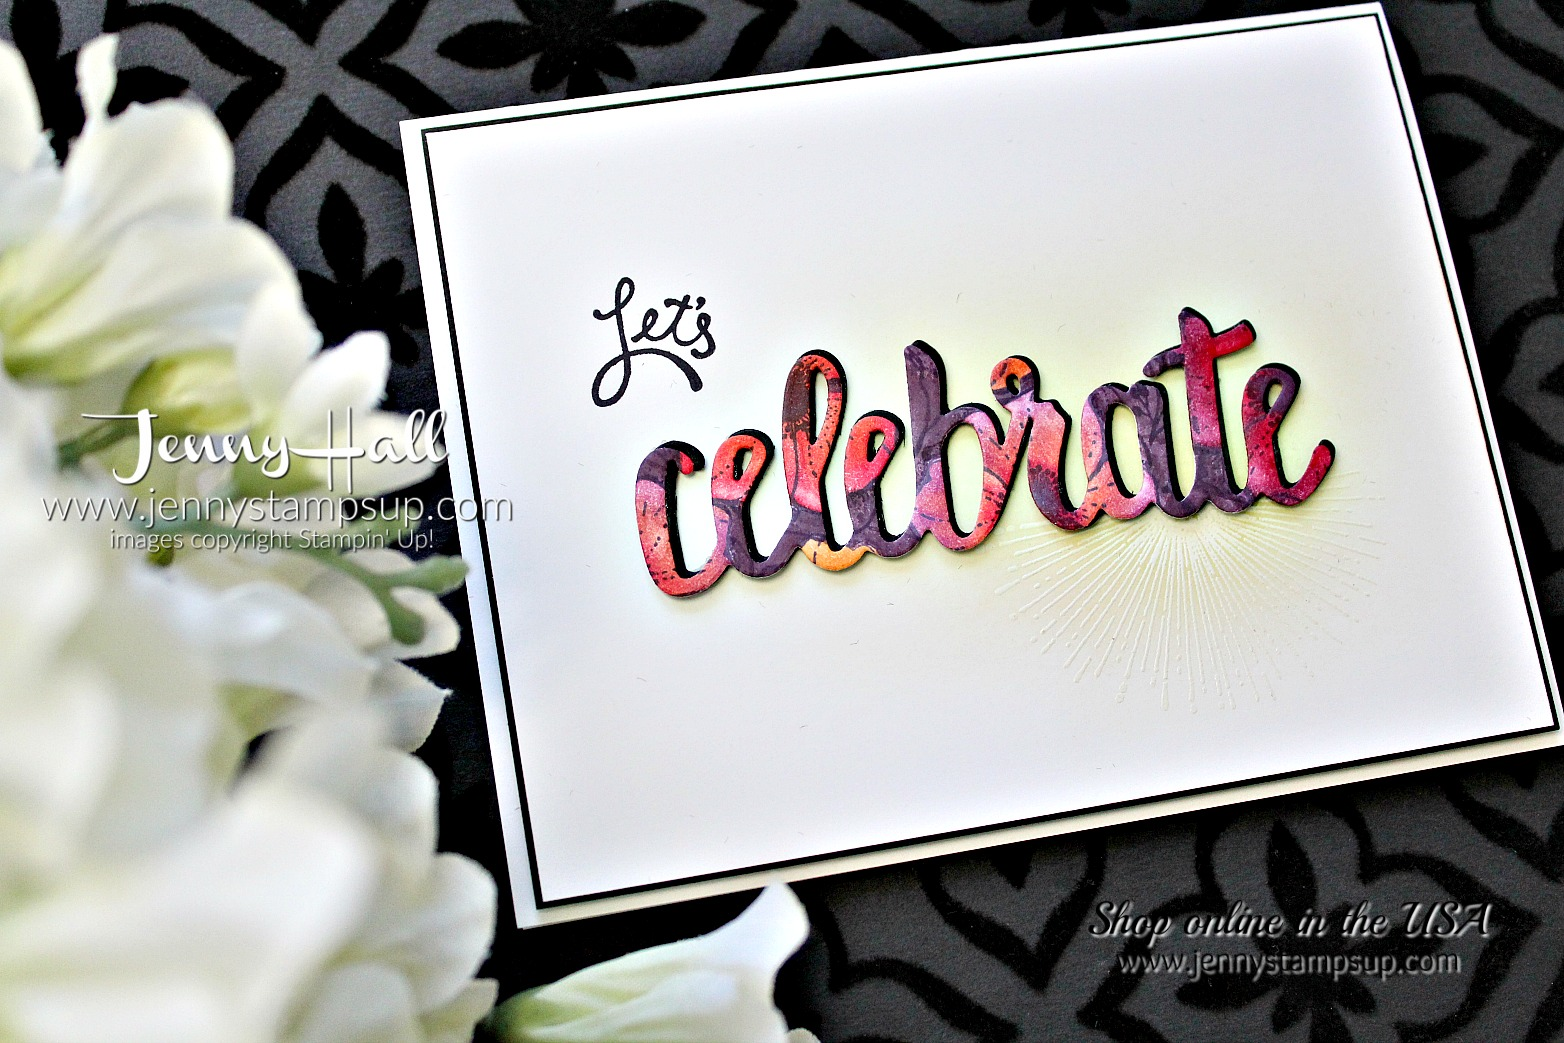 Be Inspired Blog Hop card by Jenny Hall at www.jennystampsup.com for #stampinup #cardmaking #videotutorials #jennystampsup #jennyhalldesign #jennyhallstampinup #scrapbooking #amazingyoustamp #celebrateyouthinlits #cascards #cleanandsimplecards and more!